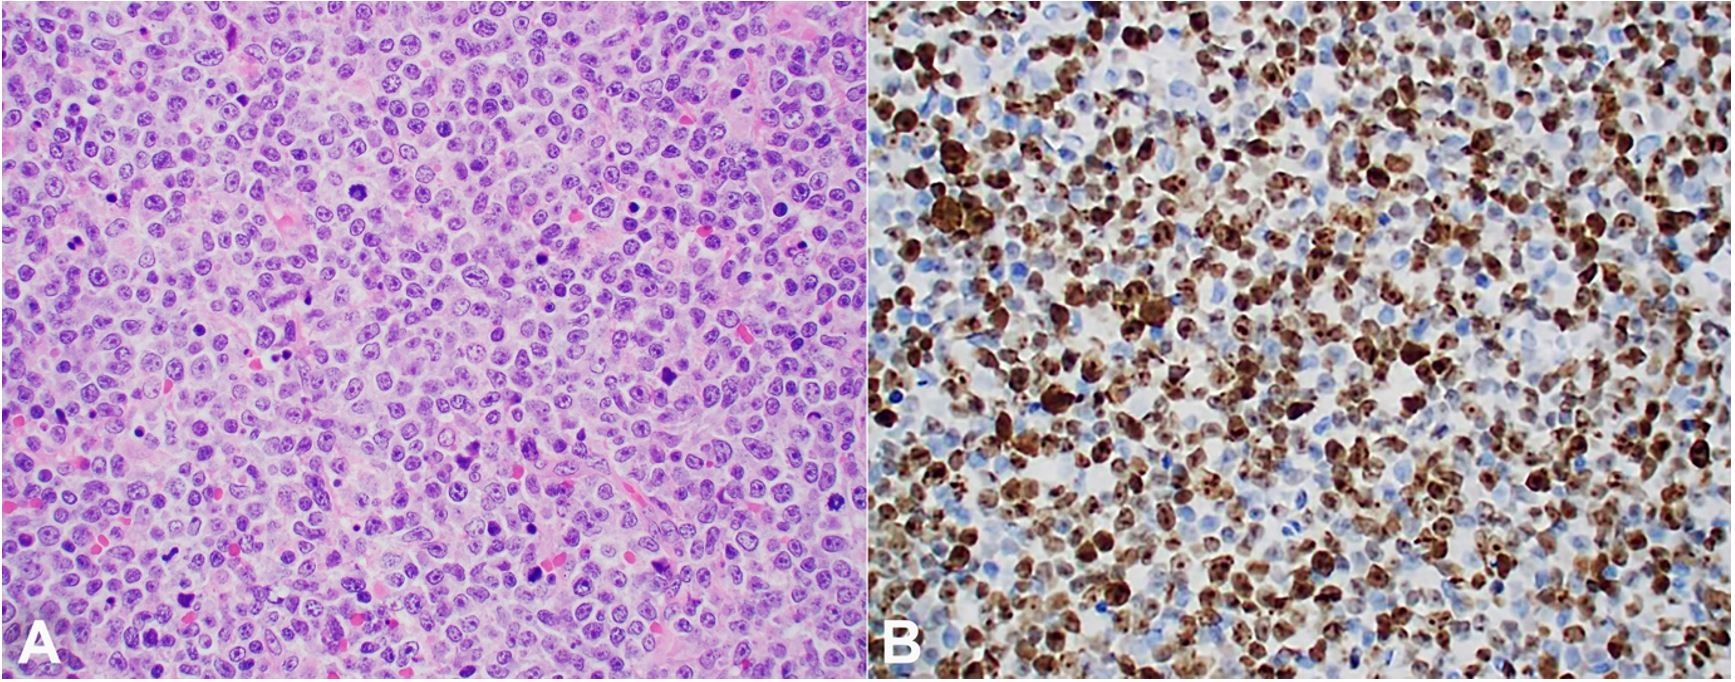 A – Photomicrograph of the supraclavicular lymph node showing sheets of intermediate-sized cells with prominent mitoses (H&E, 40X); B – Ki67 (MIB1) immunohistochemical stain, showing an estimated 60-70% proliferation rate (40X).